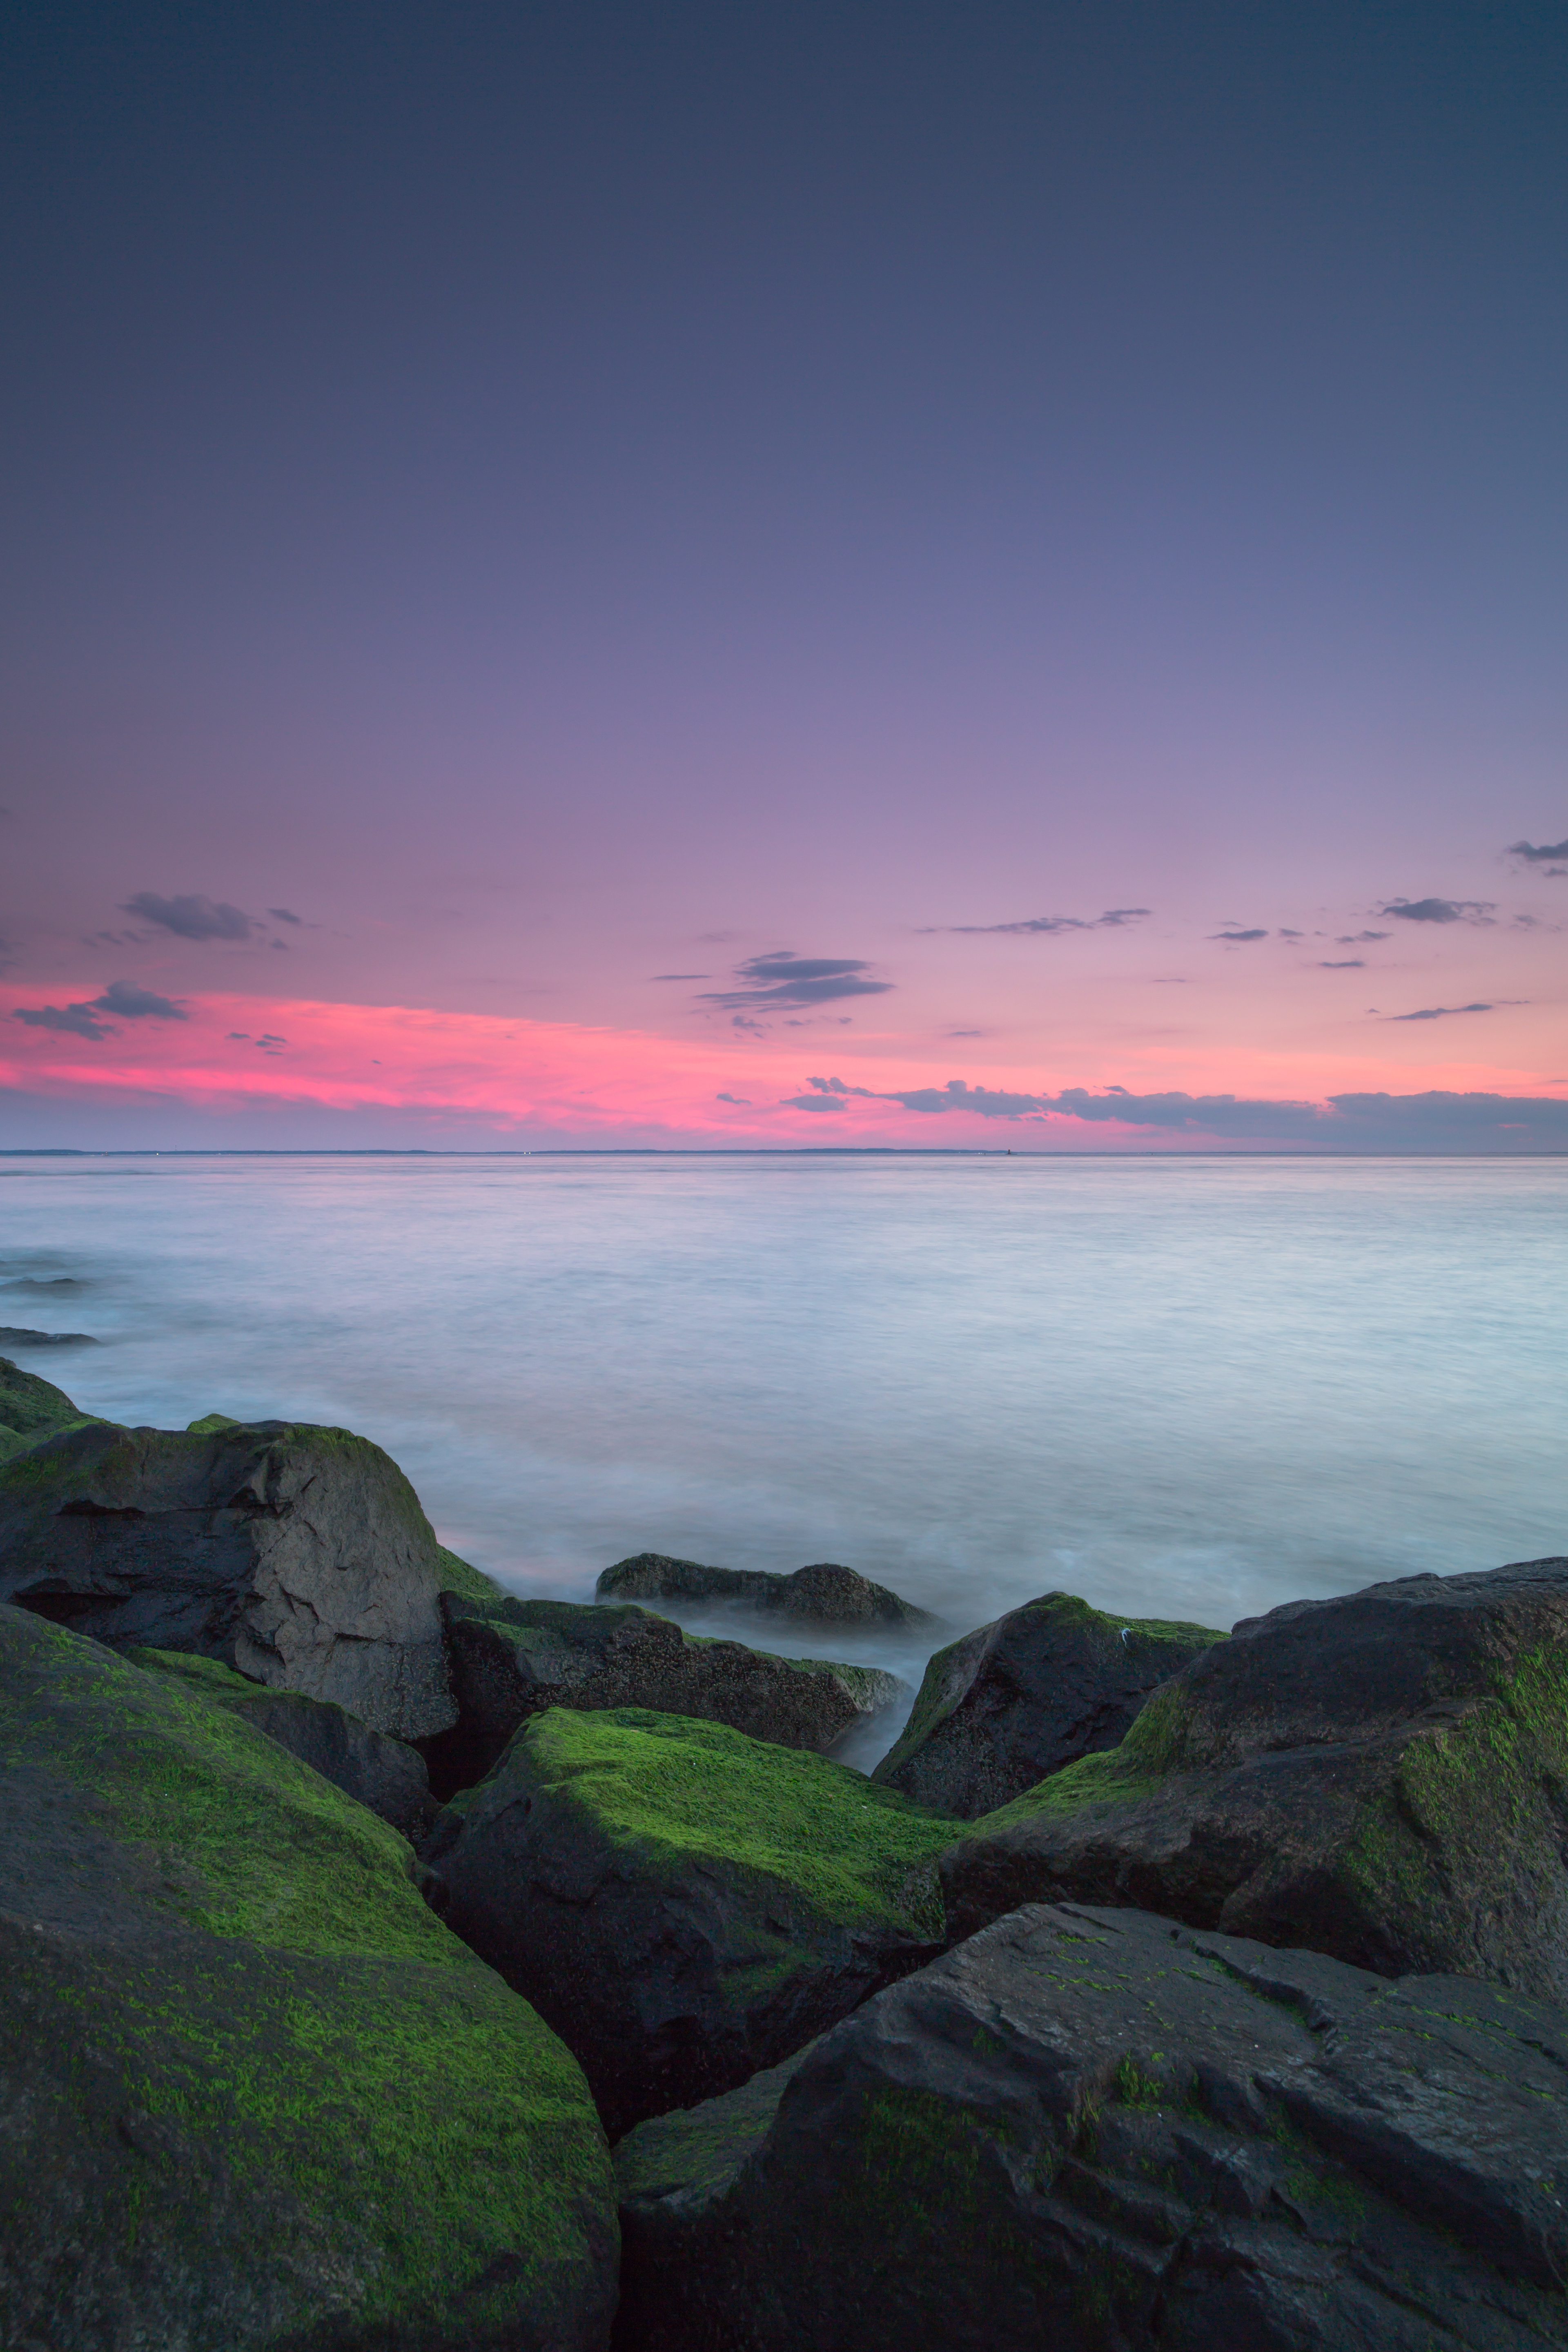 Sunset on a rock moss beach example image 1